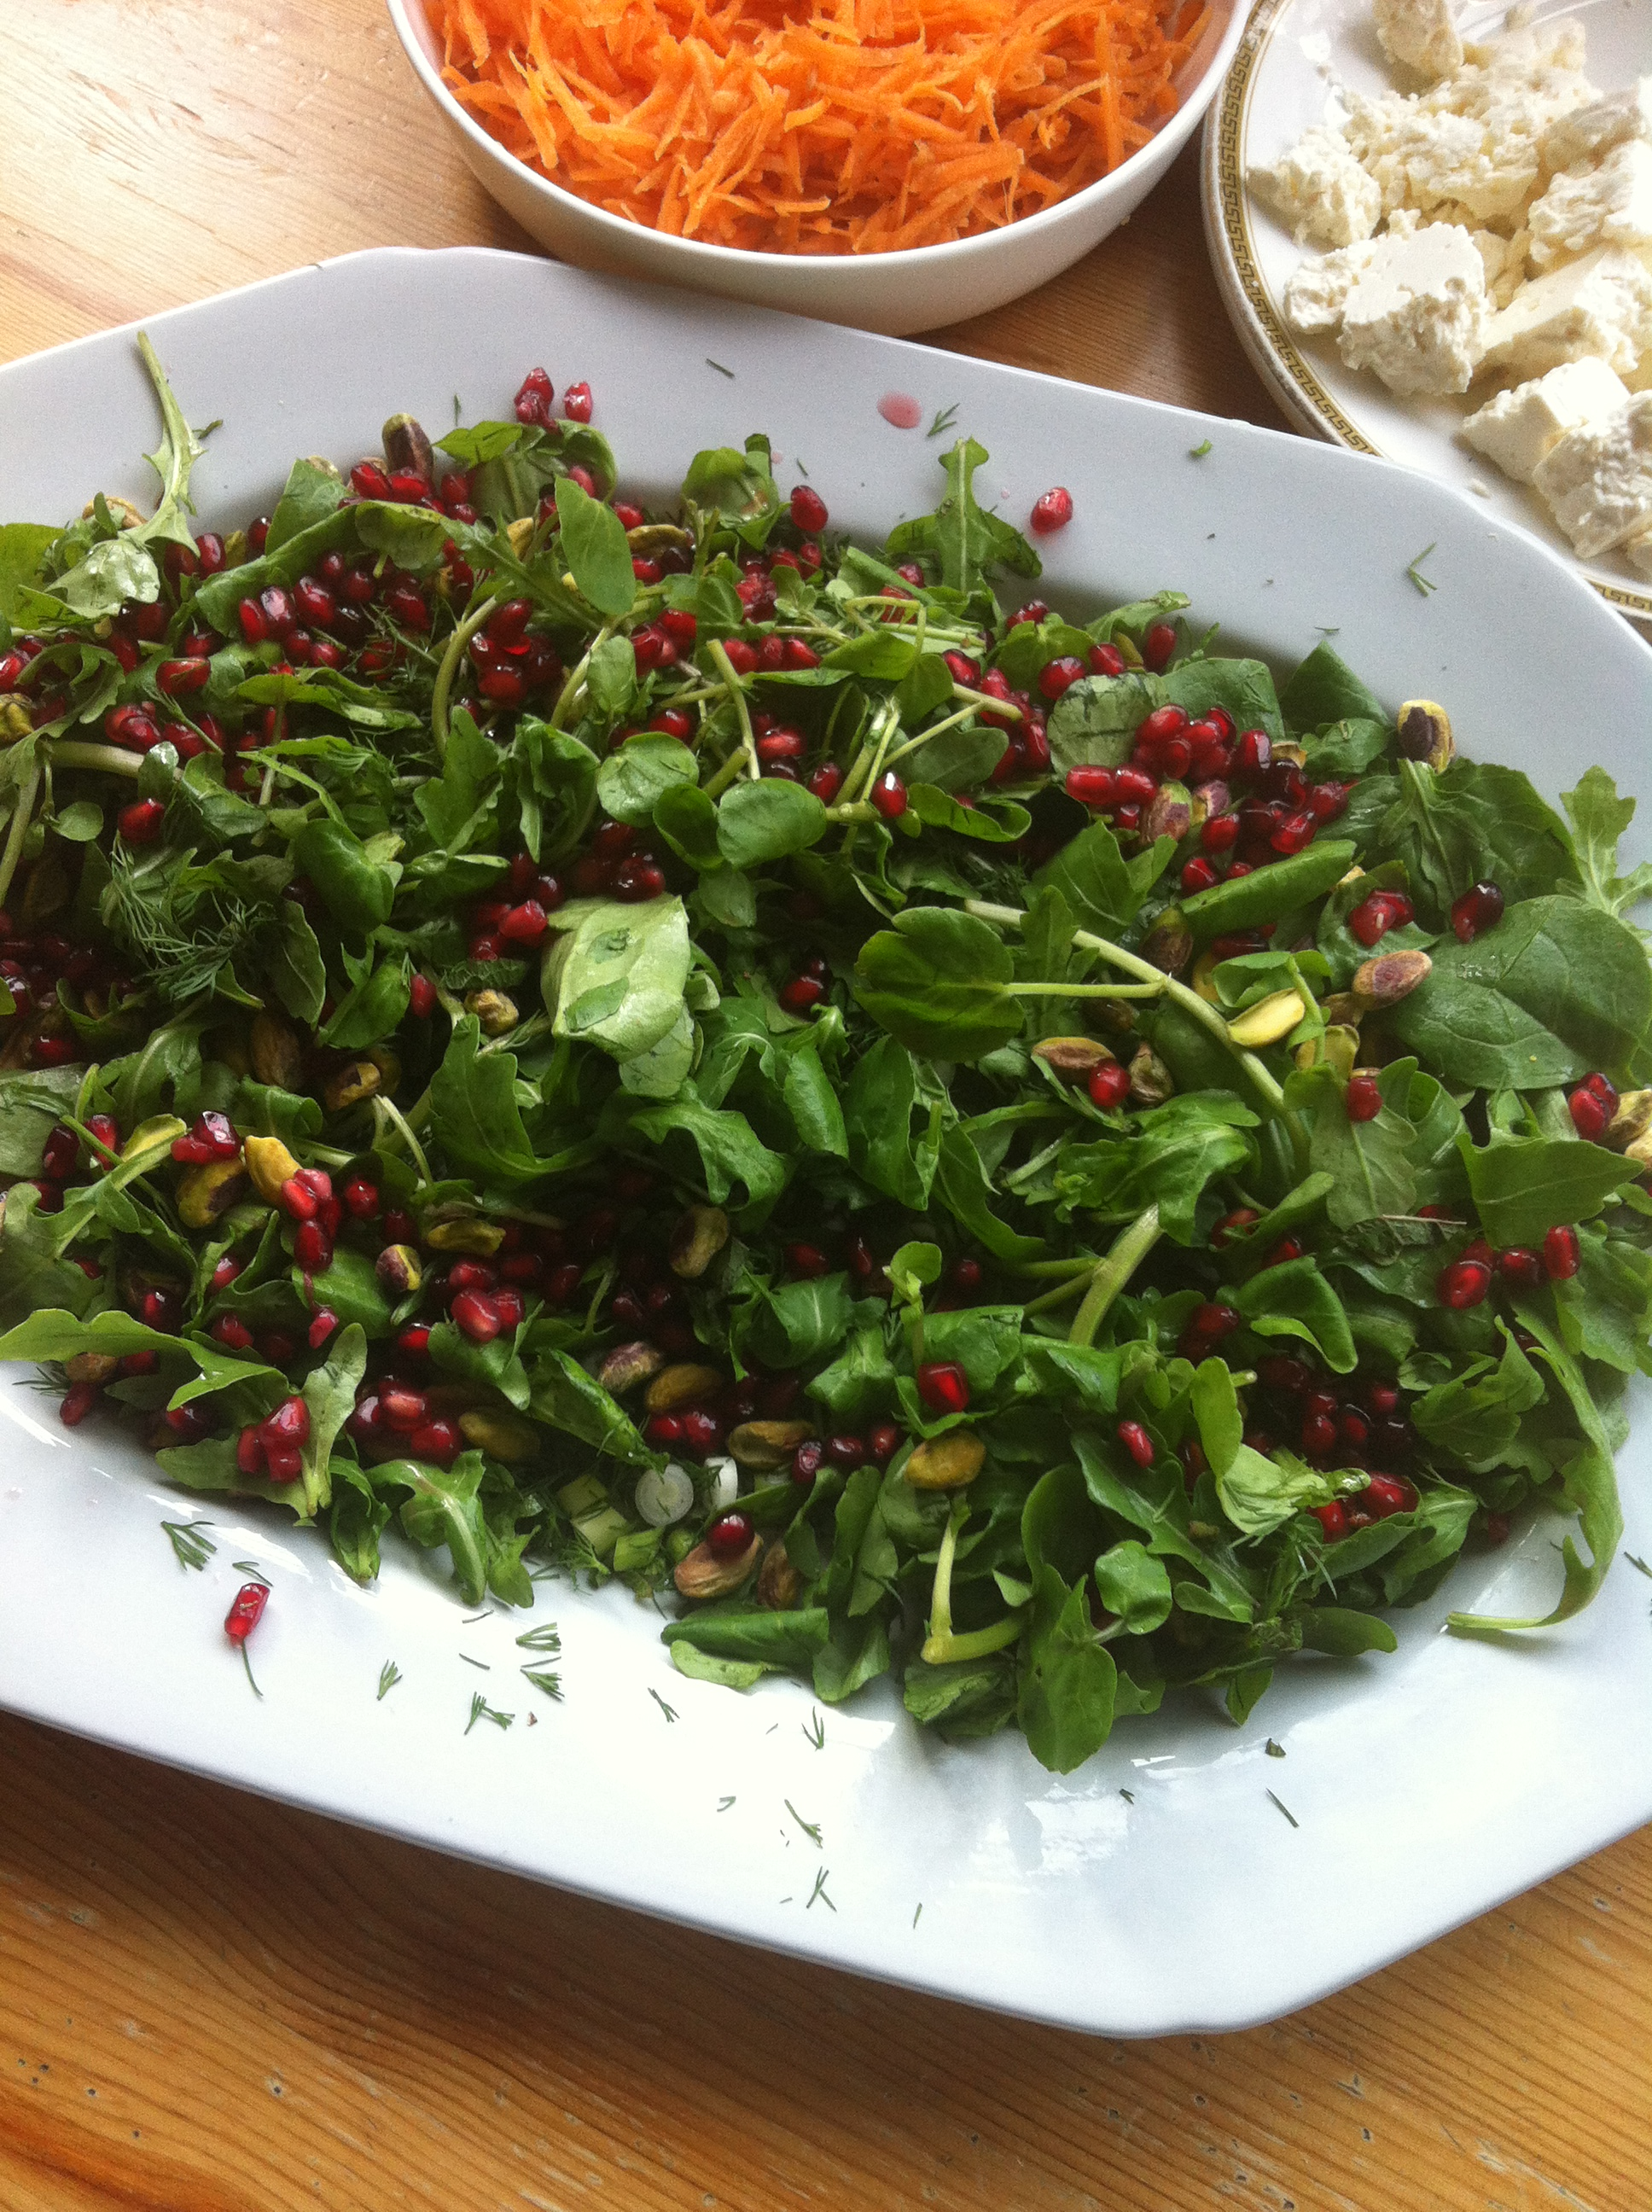 Moroccan Leaf Salad with Pomegranate and Pistachios by Beachhutcook